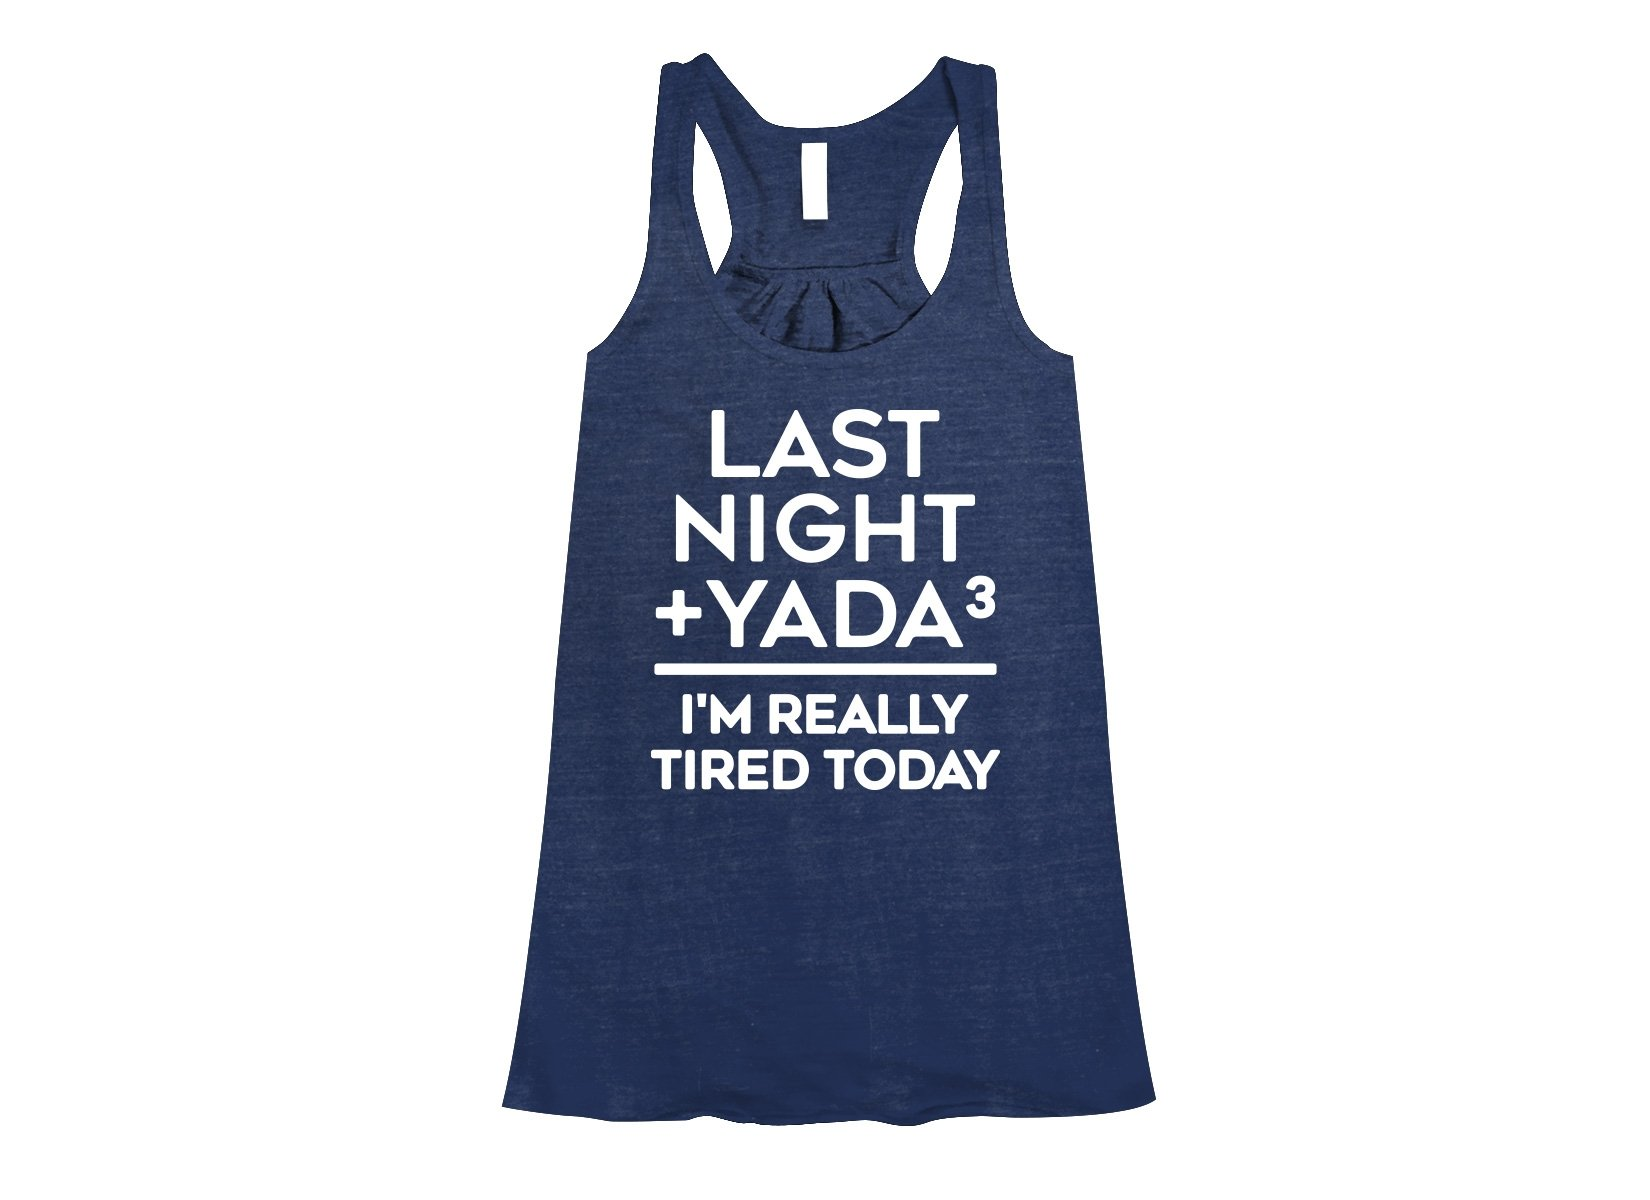 Last Night + Yada Yada Yada on Womens Tanks T-Shirt